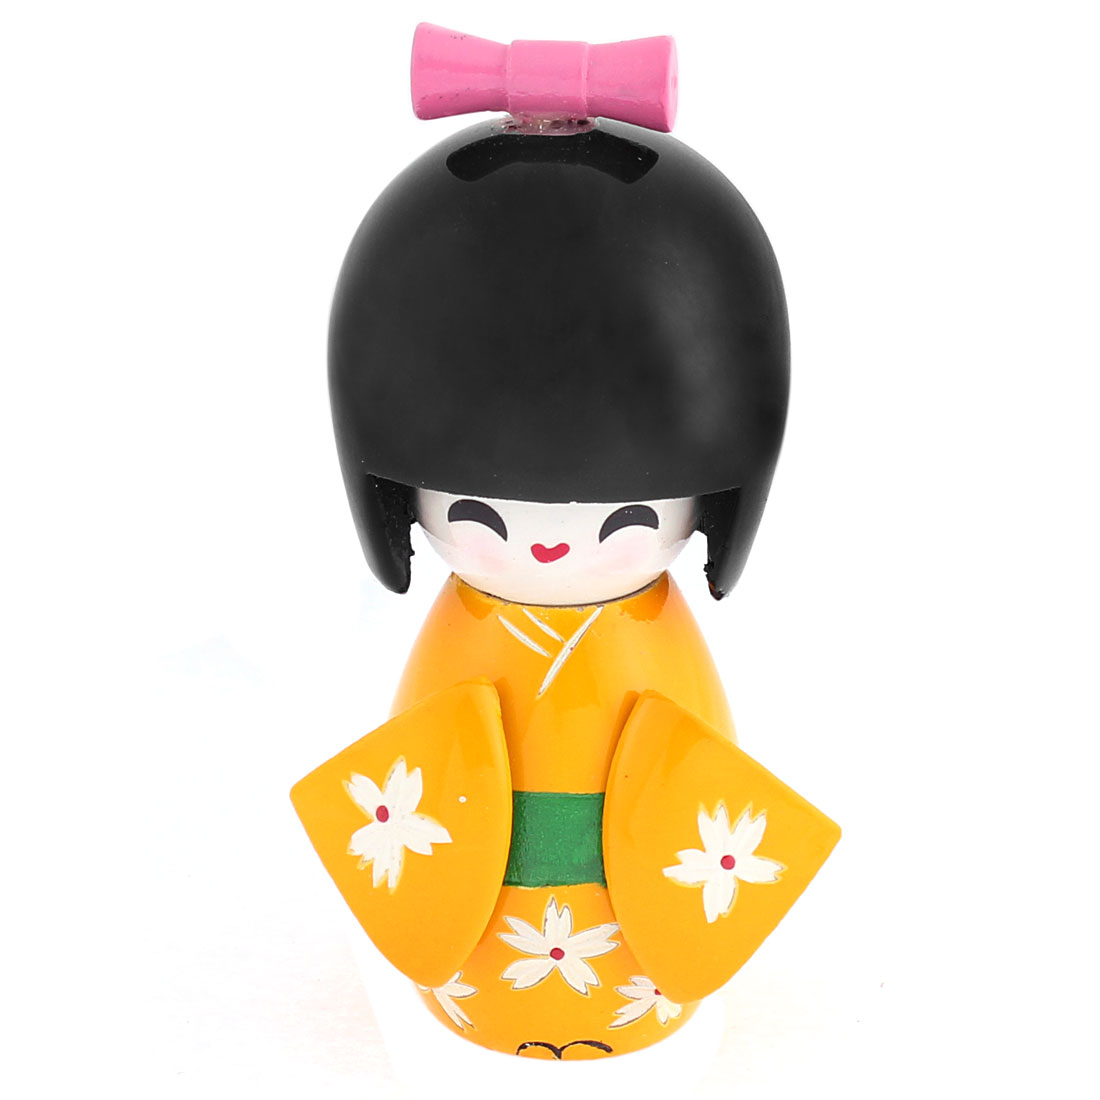 White Flower Carved Yellow Japanese Kimono Kokeshi Wooden Doll Desk Ornament